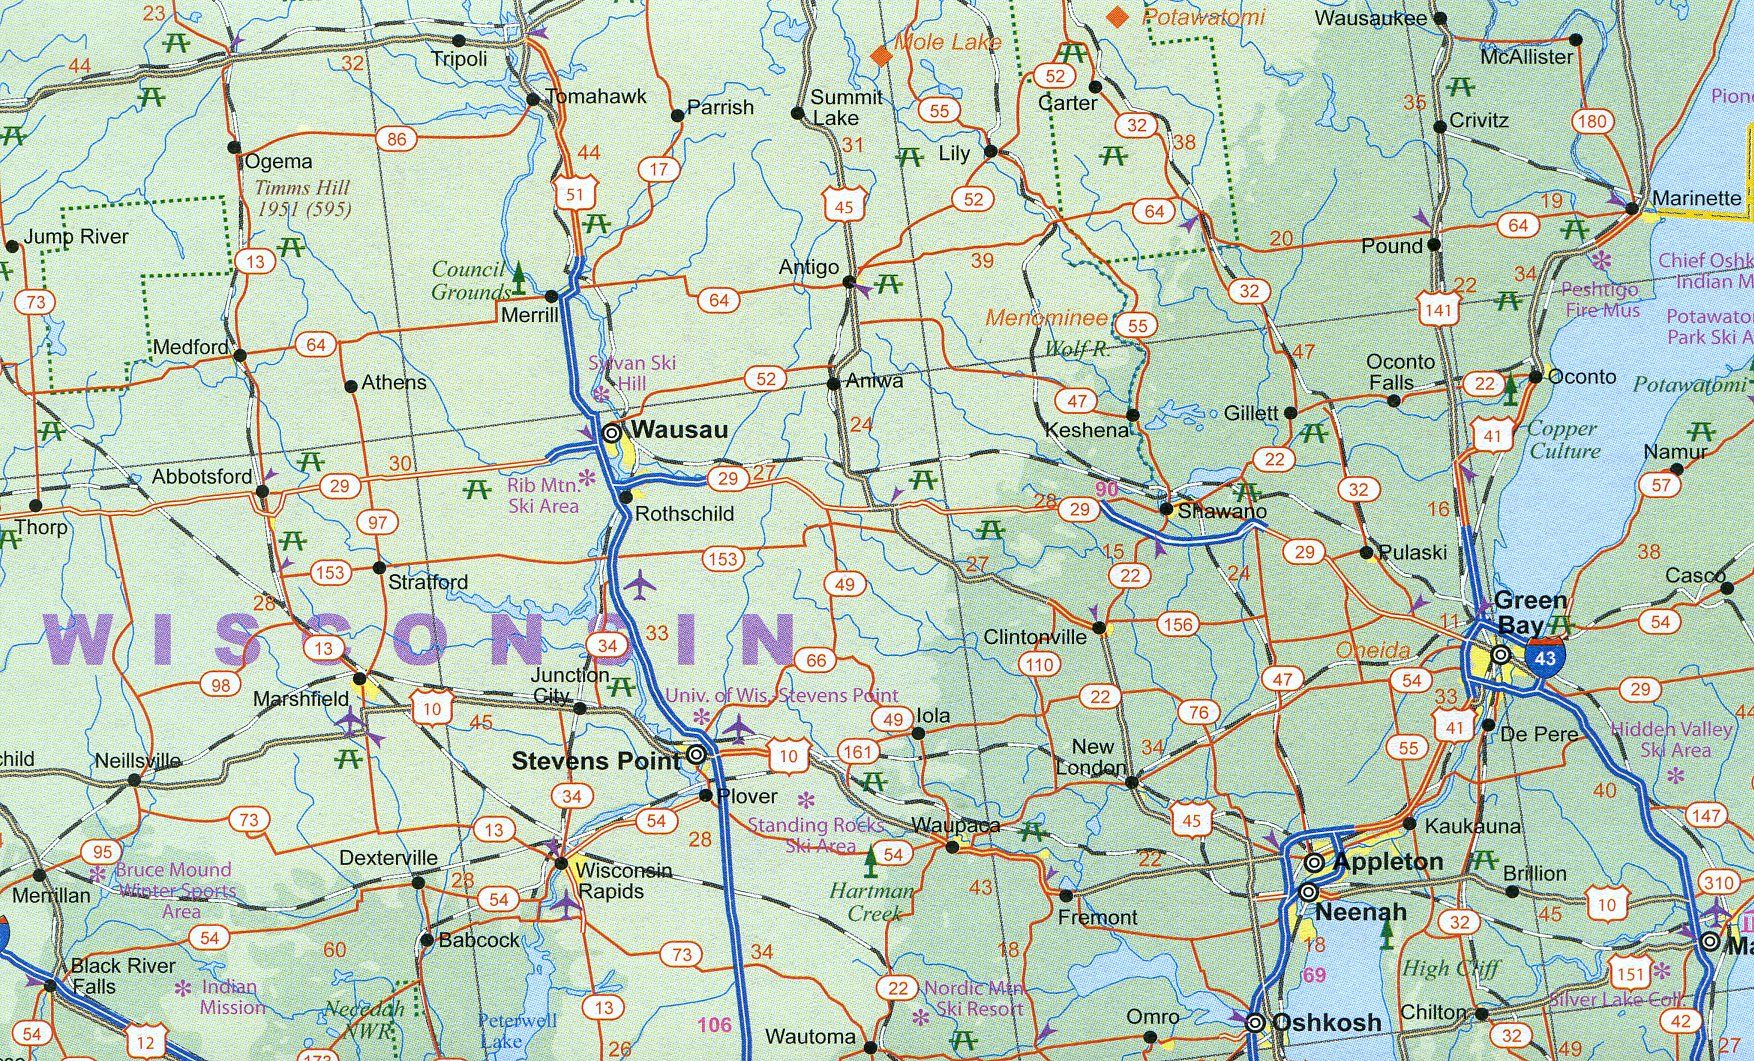 Map Of America Mississippi River.3 Usa Central Mississippi River States Travel Reference Map